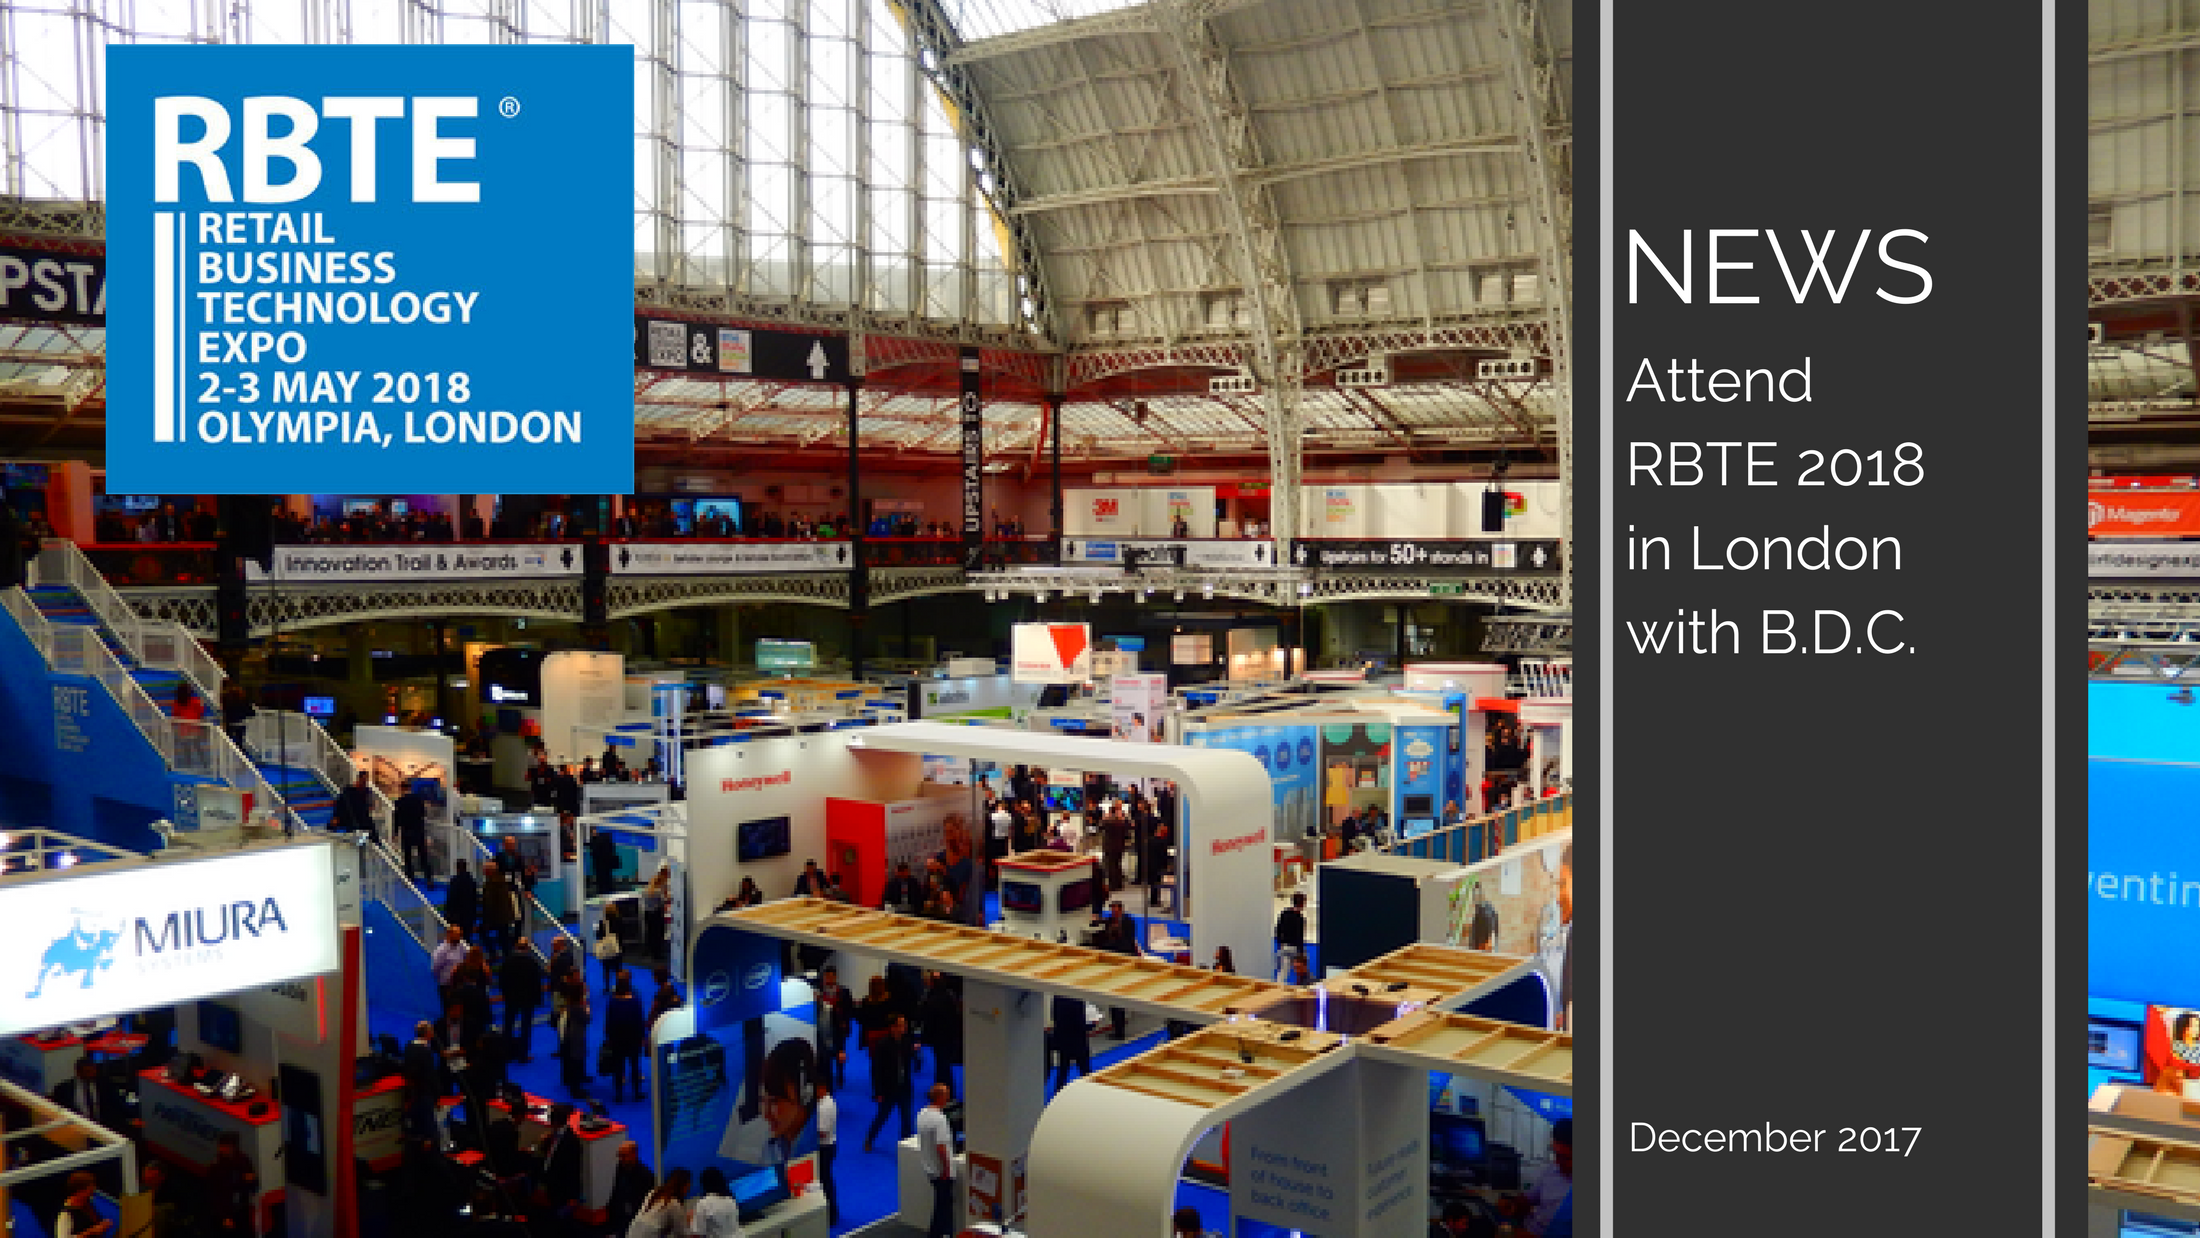 Trends News 16 - Retail Business Technology Expo (RBTE) in May 2018